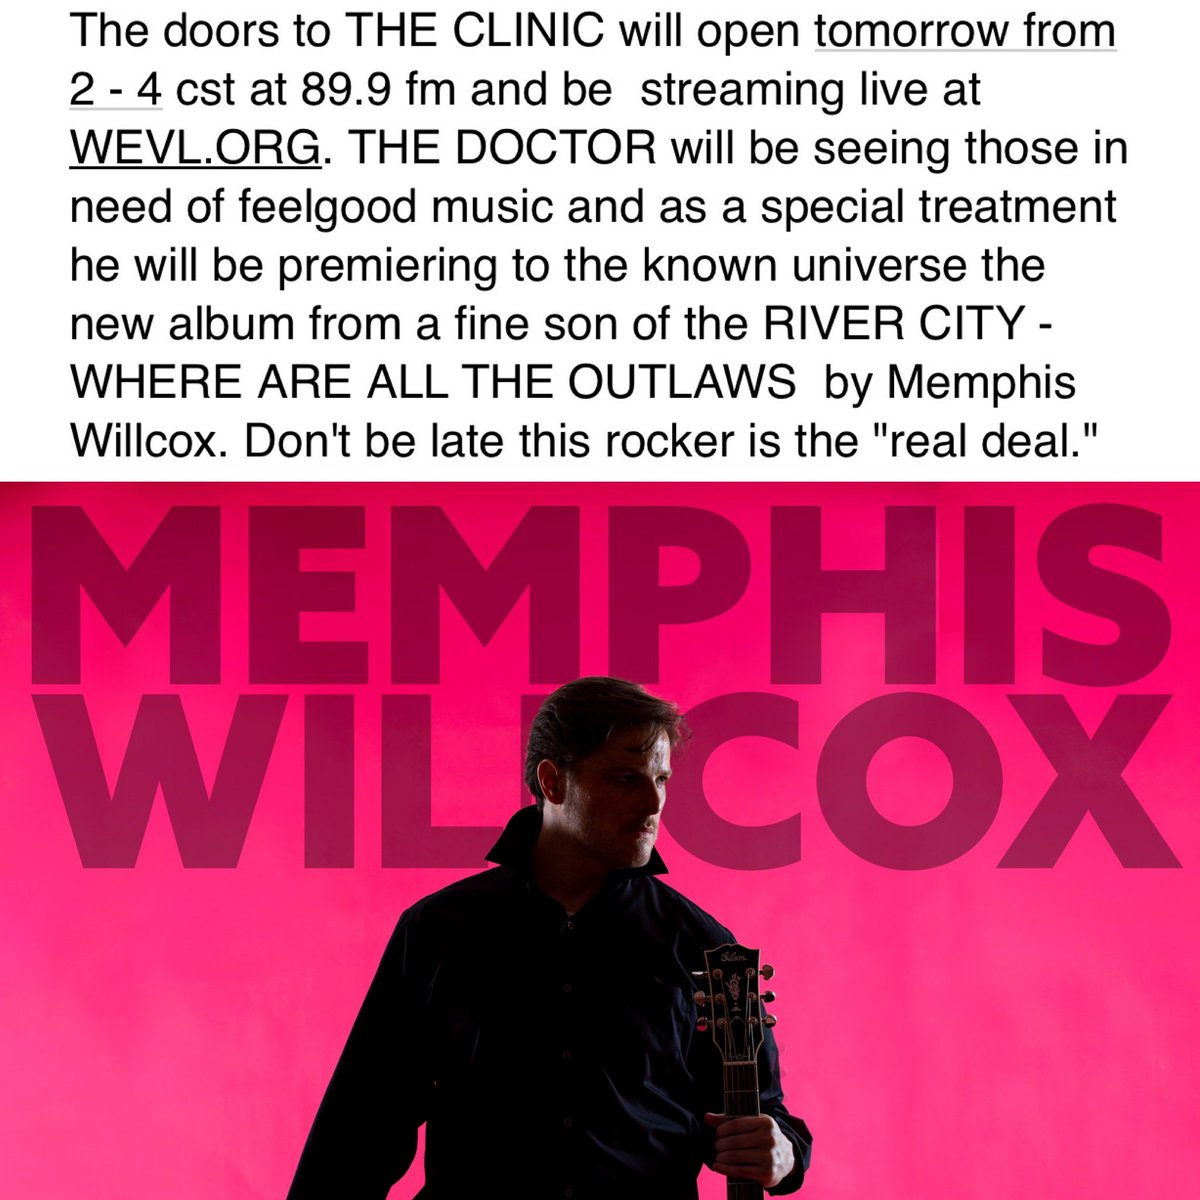 #Memphis #Memphisaf #NYC #LA #Rock #countrymusic #Blues #Soul #Warner #Universal #Sony #Knoxiville #ScruffyCity #GrindCity   @grindcitymedia @FrasierSein @memgrizz @TigersAthletics @MemphisFB @Memphis_MBB @memgrizz @scottborchetta @MattRossSpang @LutherDickinson @AtlanticRecords https://t.co/uikOZBNlHX